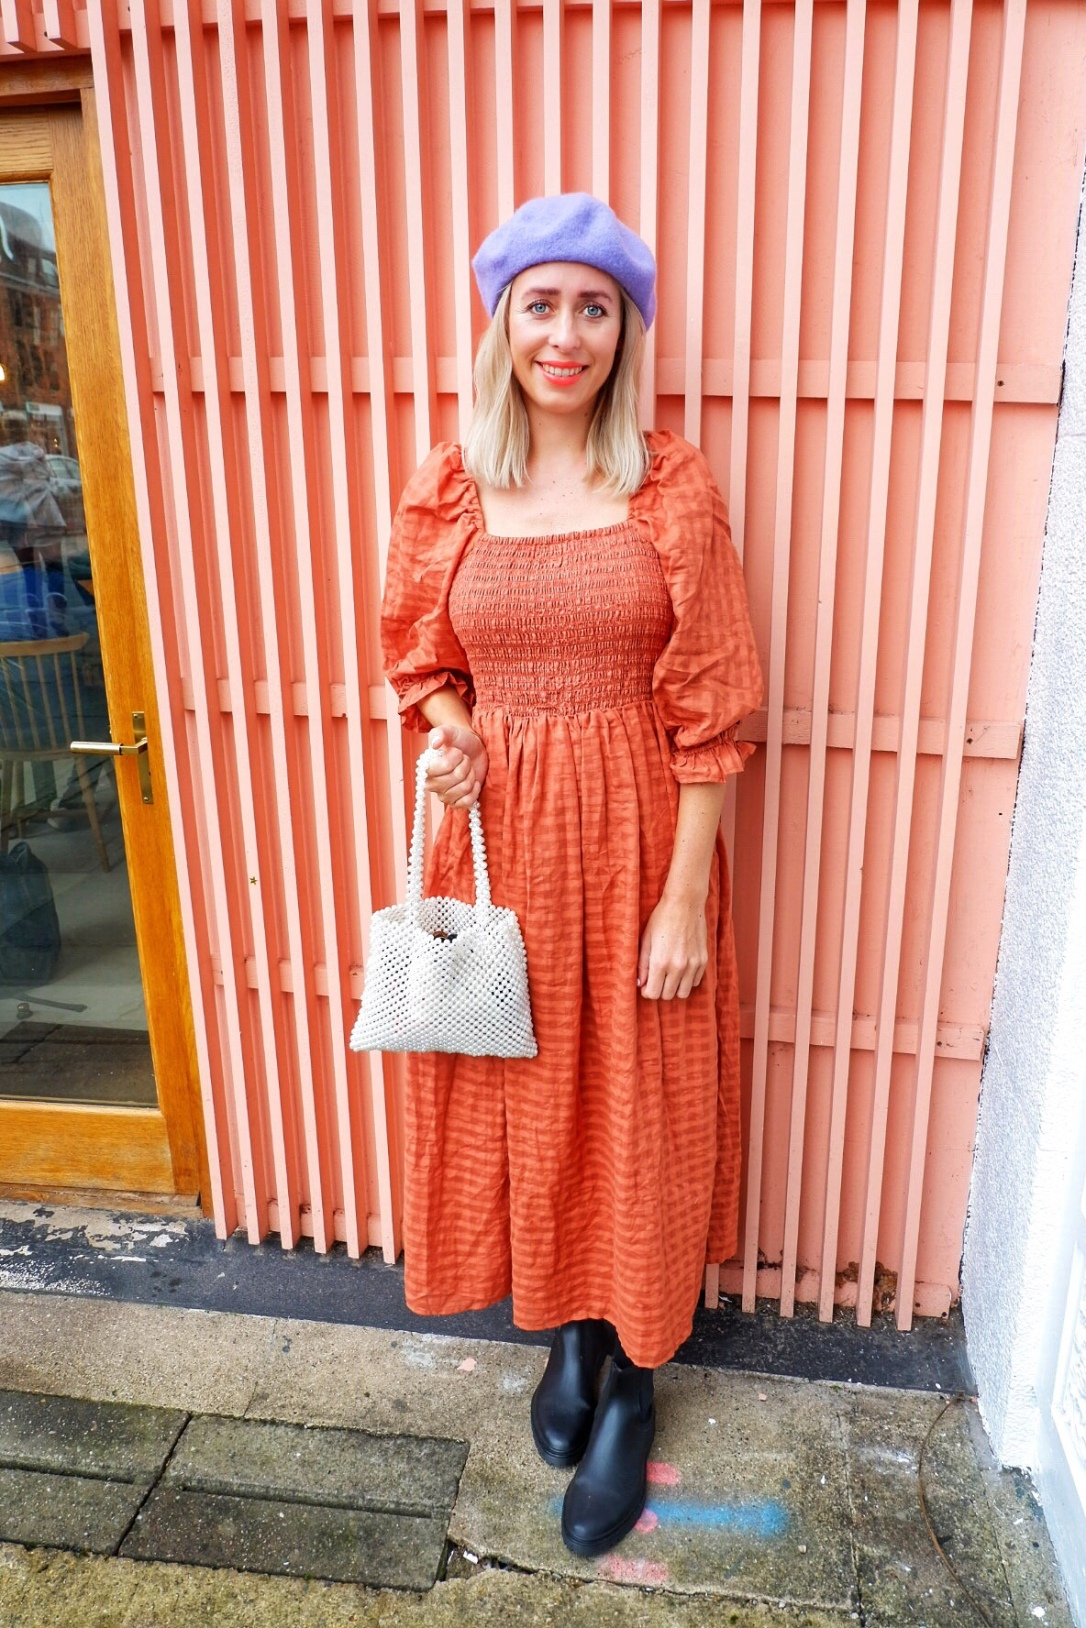 ASOS prairie dress